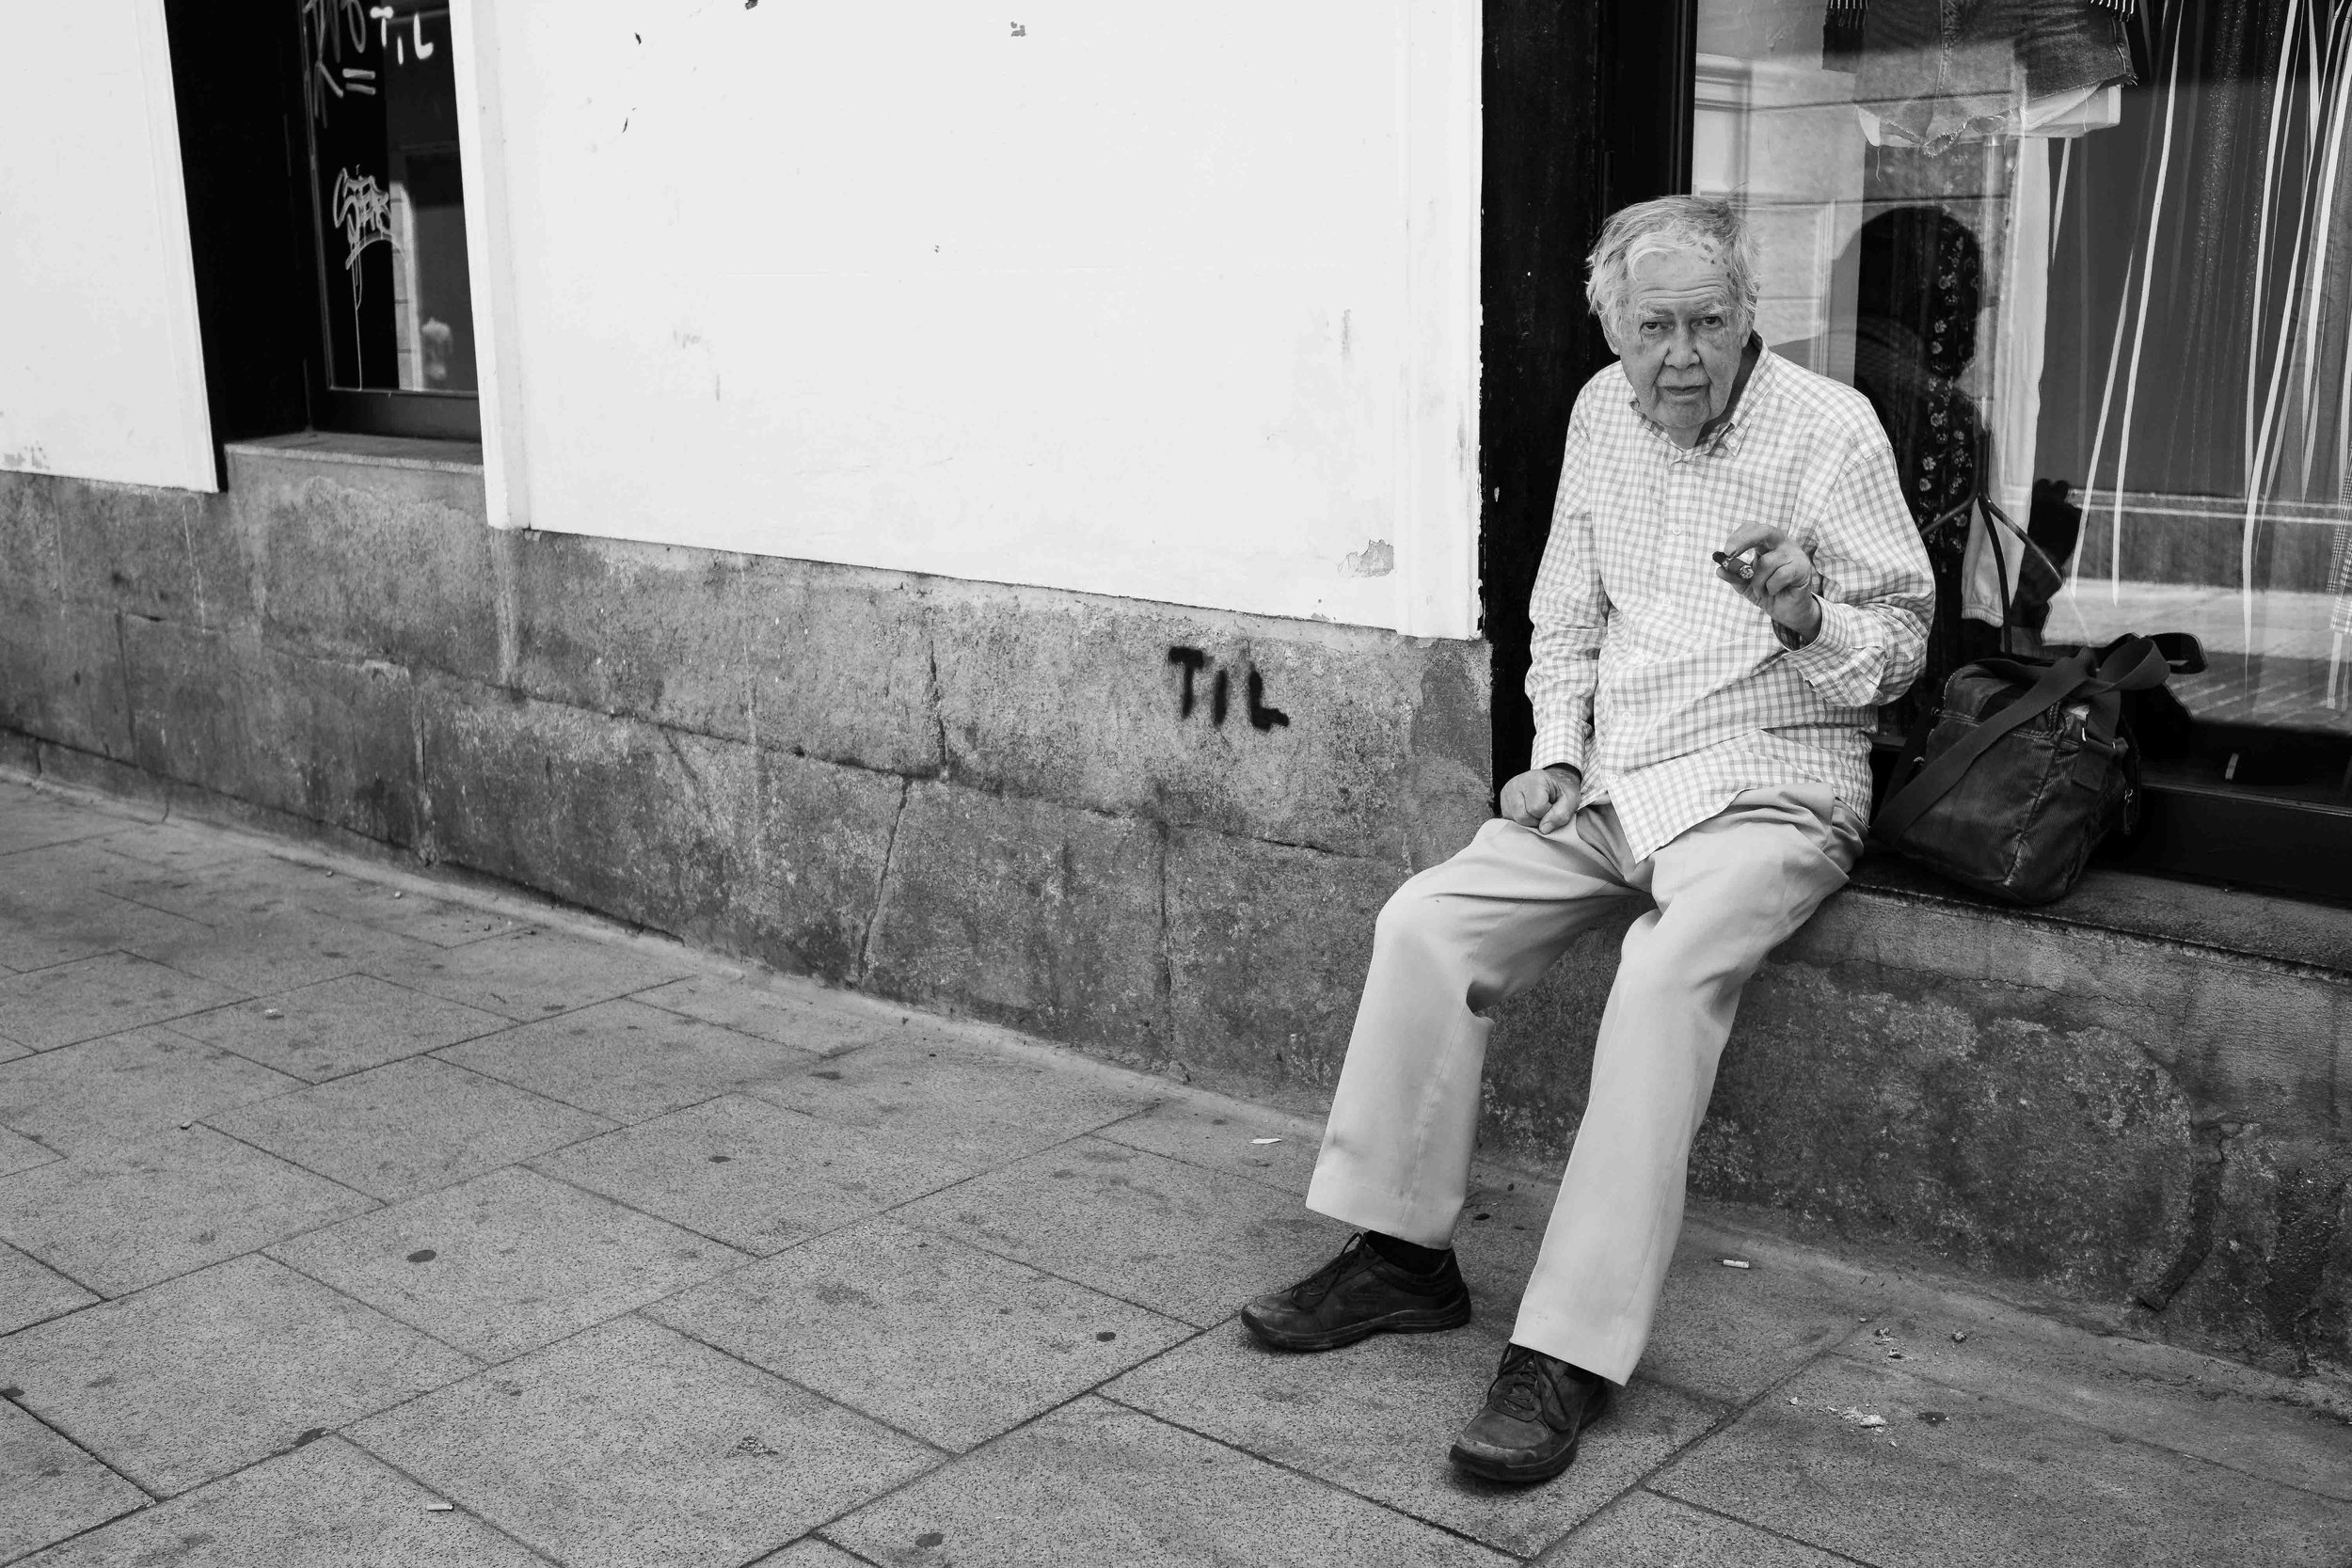 Old man with cigar.